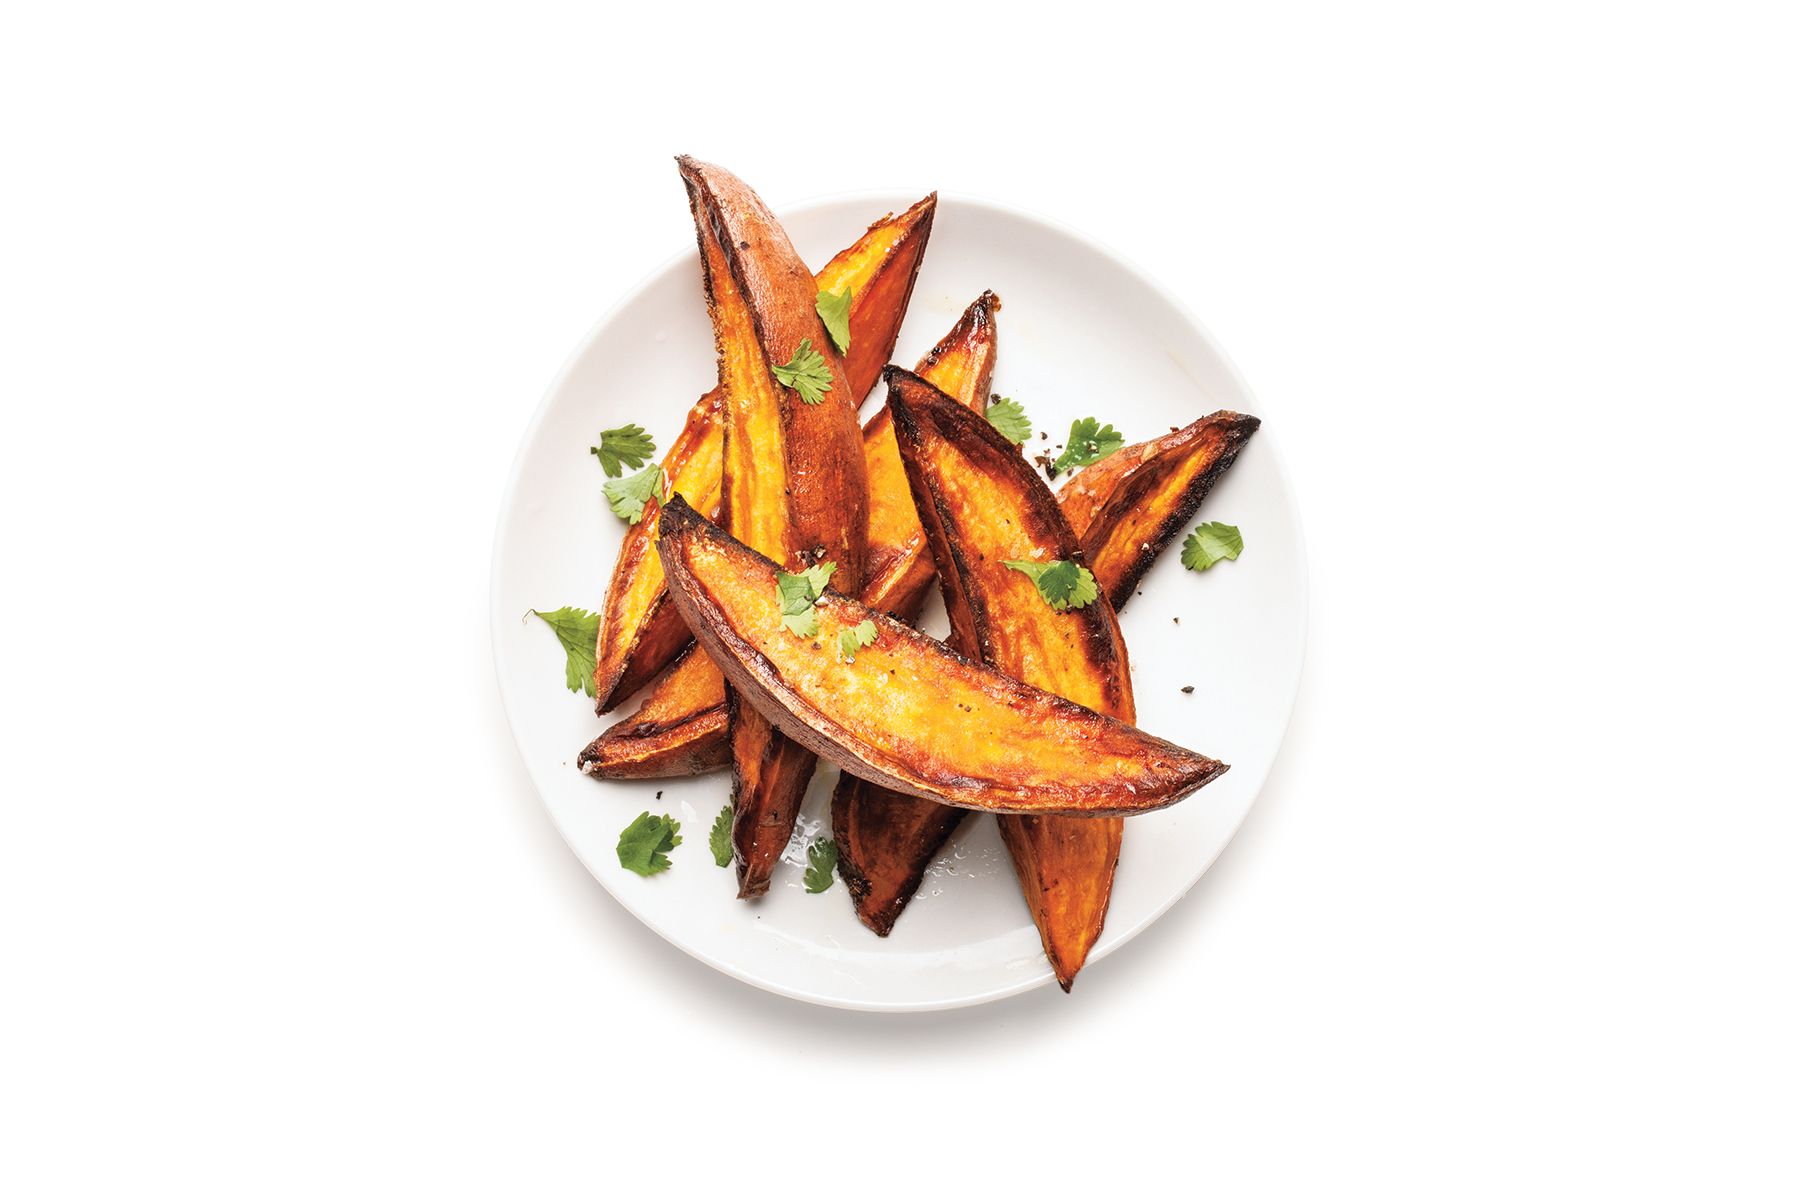 Crispy Roasted Sweet Potatoes With Lime and Cilantro